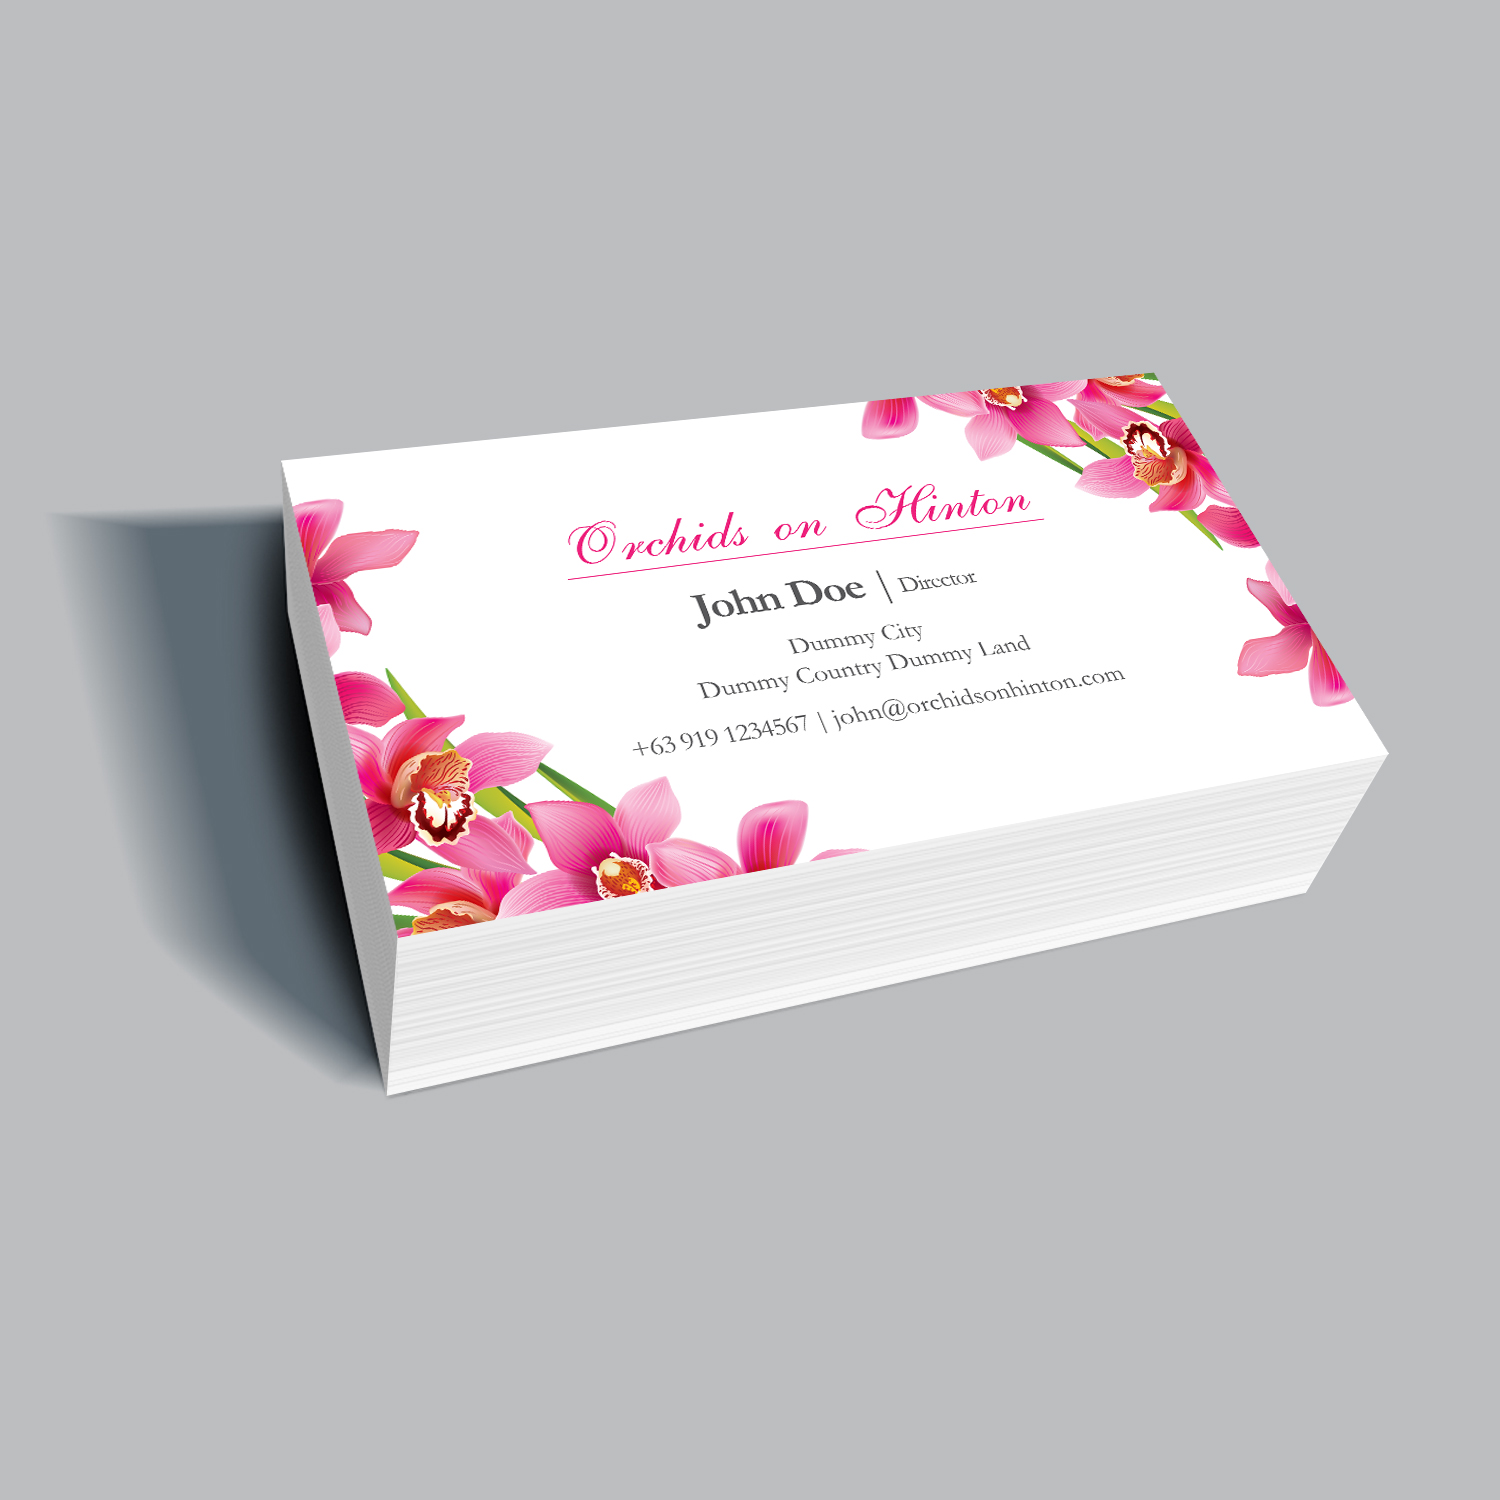 Personable elegant business card design for orchids on hinton by business card design by kreative fingers for new local orchid nursery branding design 10935737 magicingreecefo Choice Image